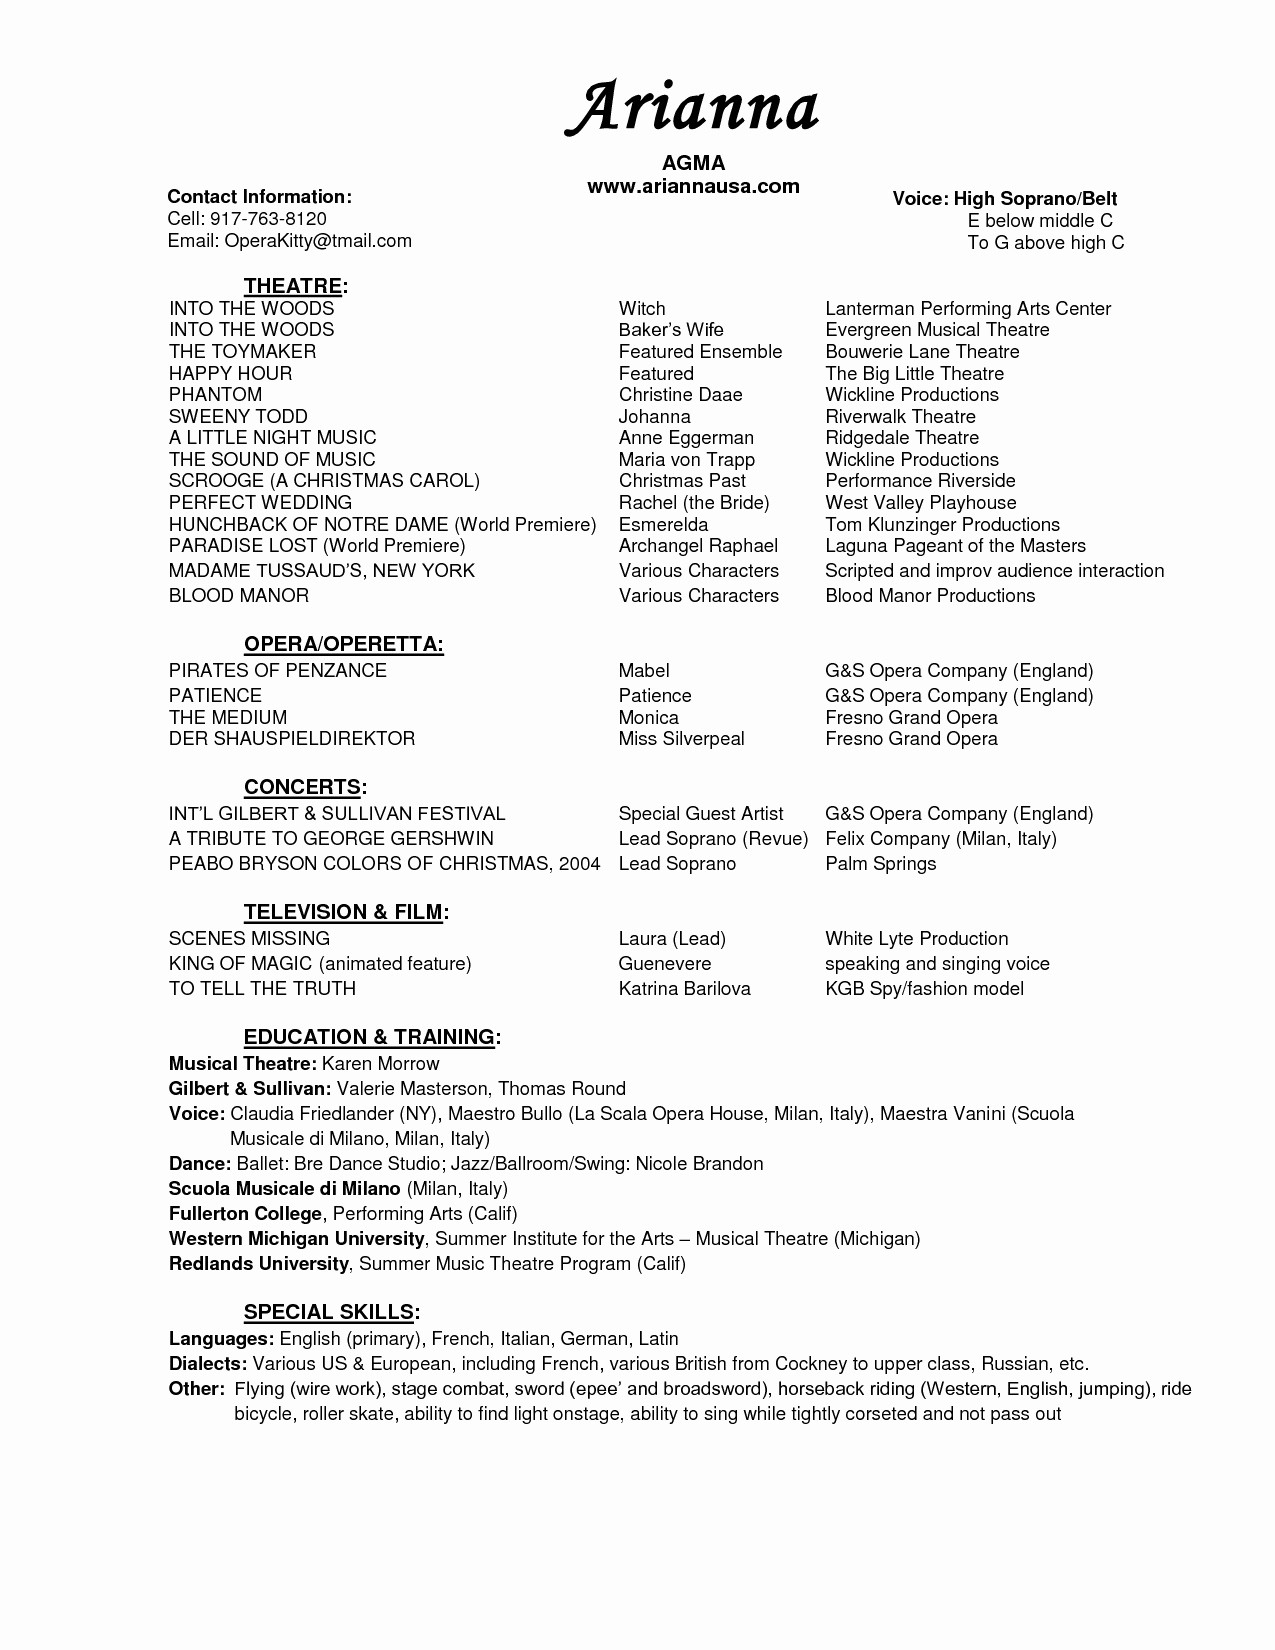 musical theatre resume template Collection-Musicians Resume Template Save Musical Theatre Resume Template Unique Resume Music 0d Wallpapers 49 20-g